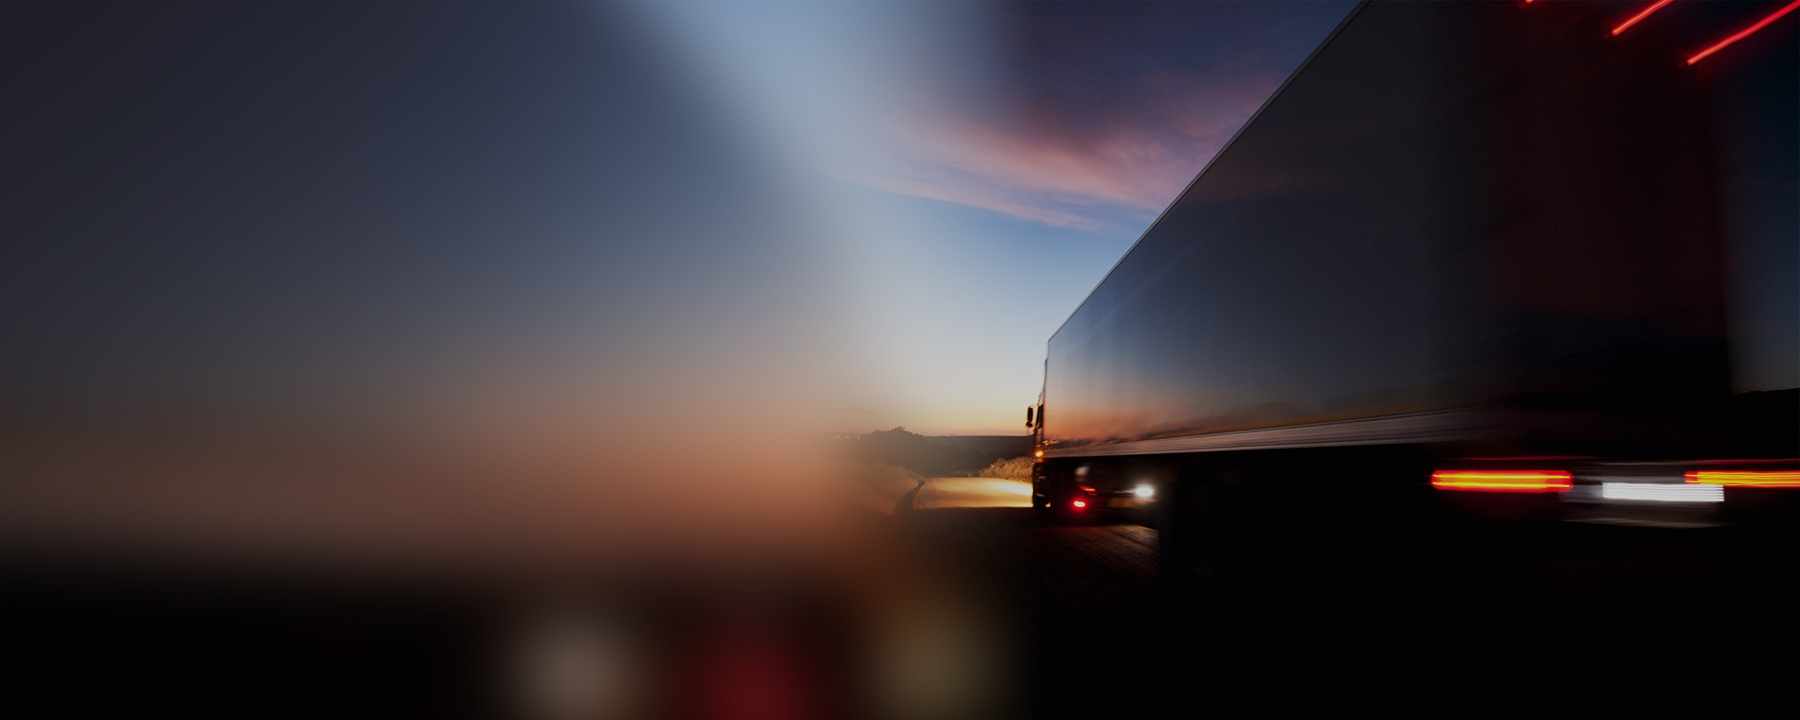 Truck on highway in motion with sunset sky